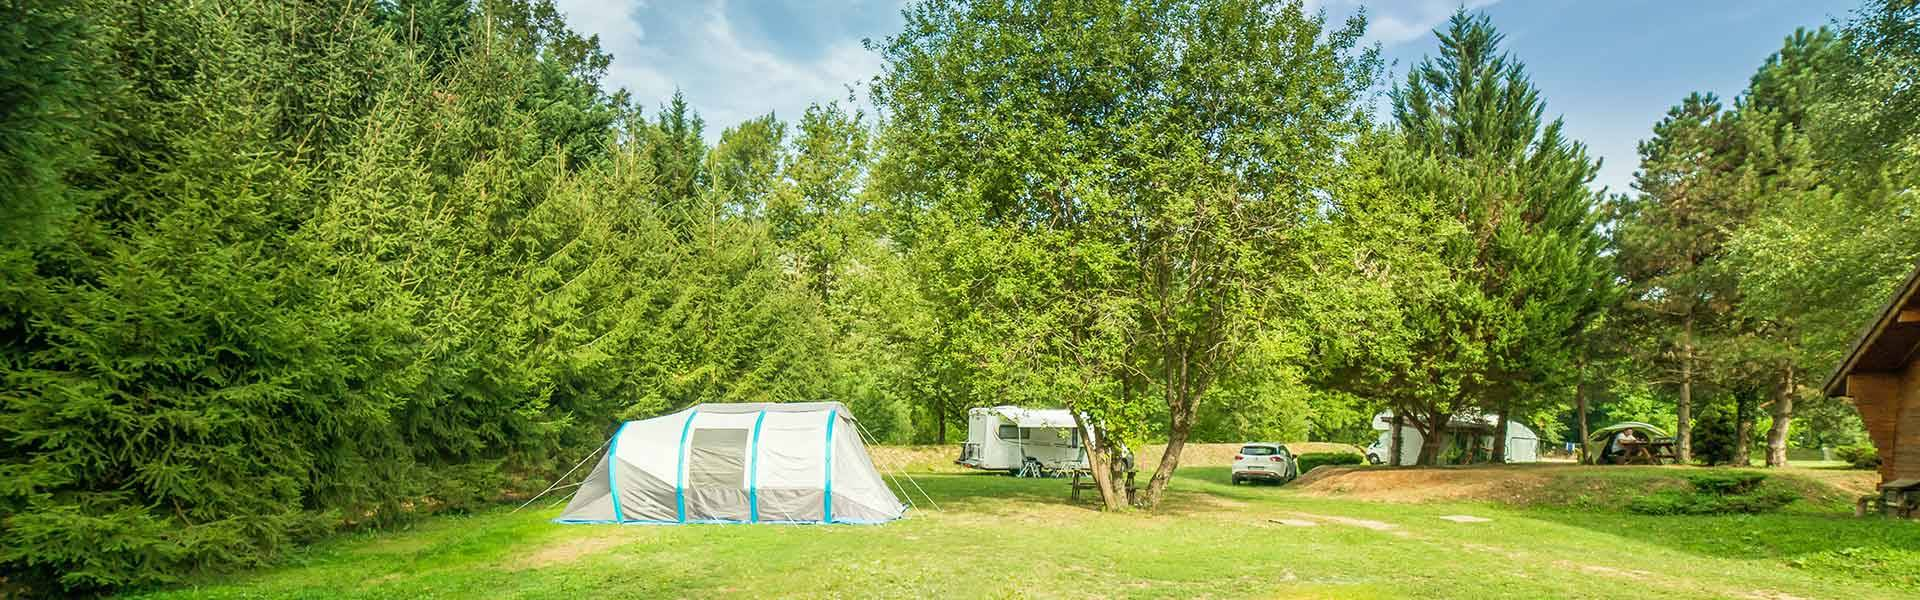 emplacement camping lac laffrey